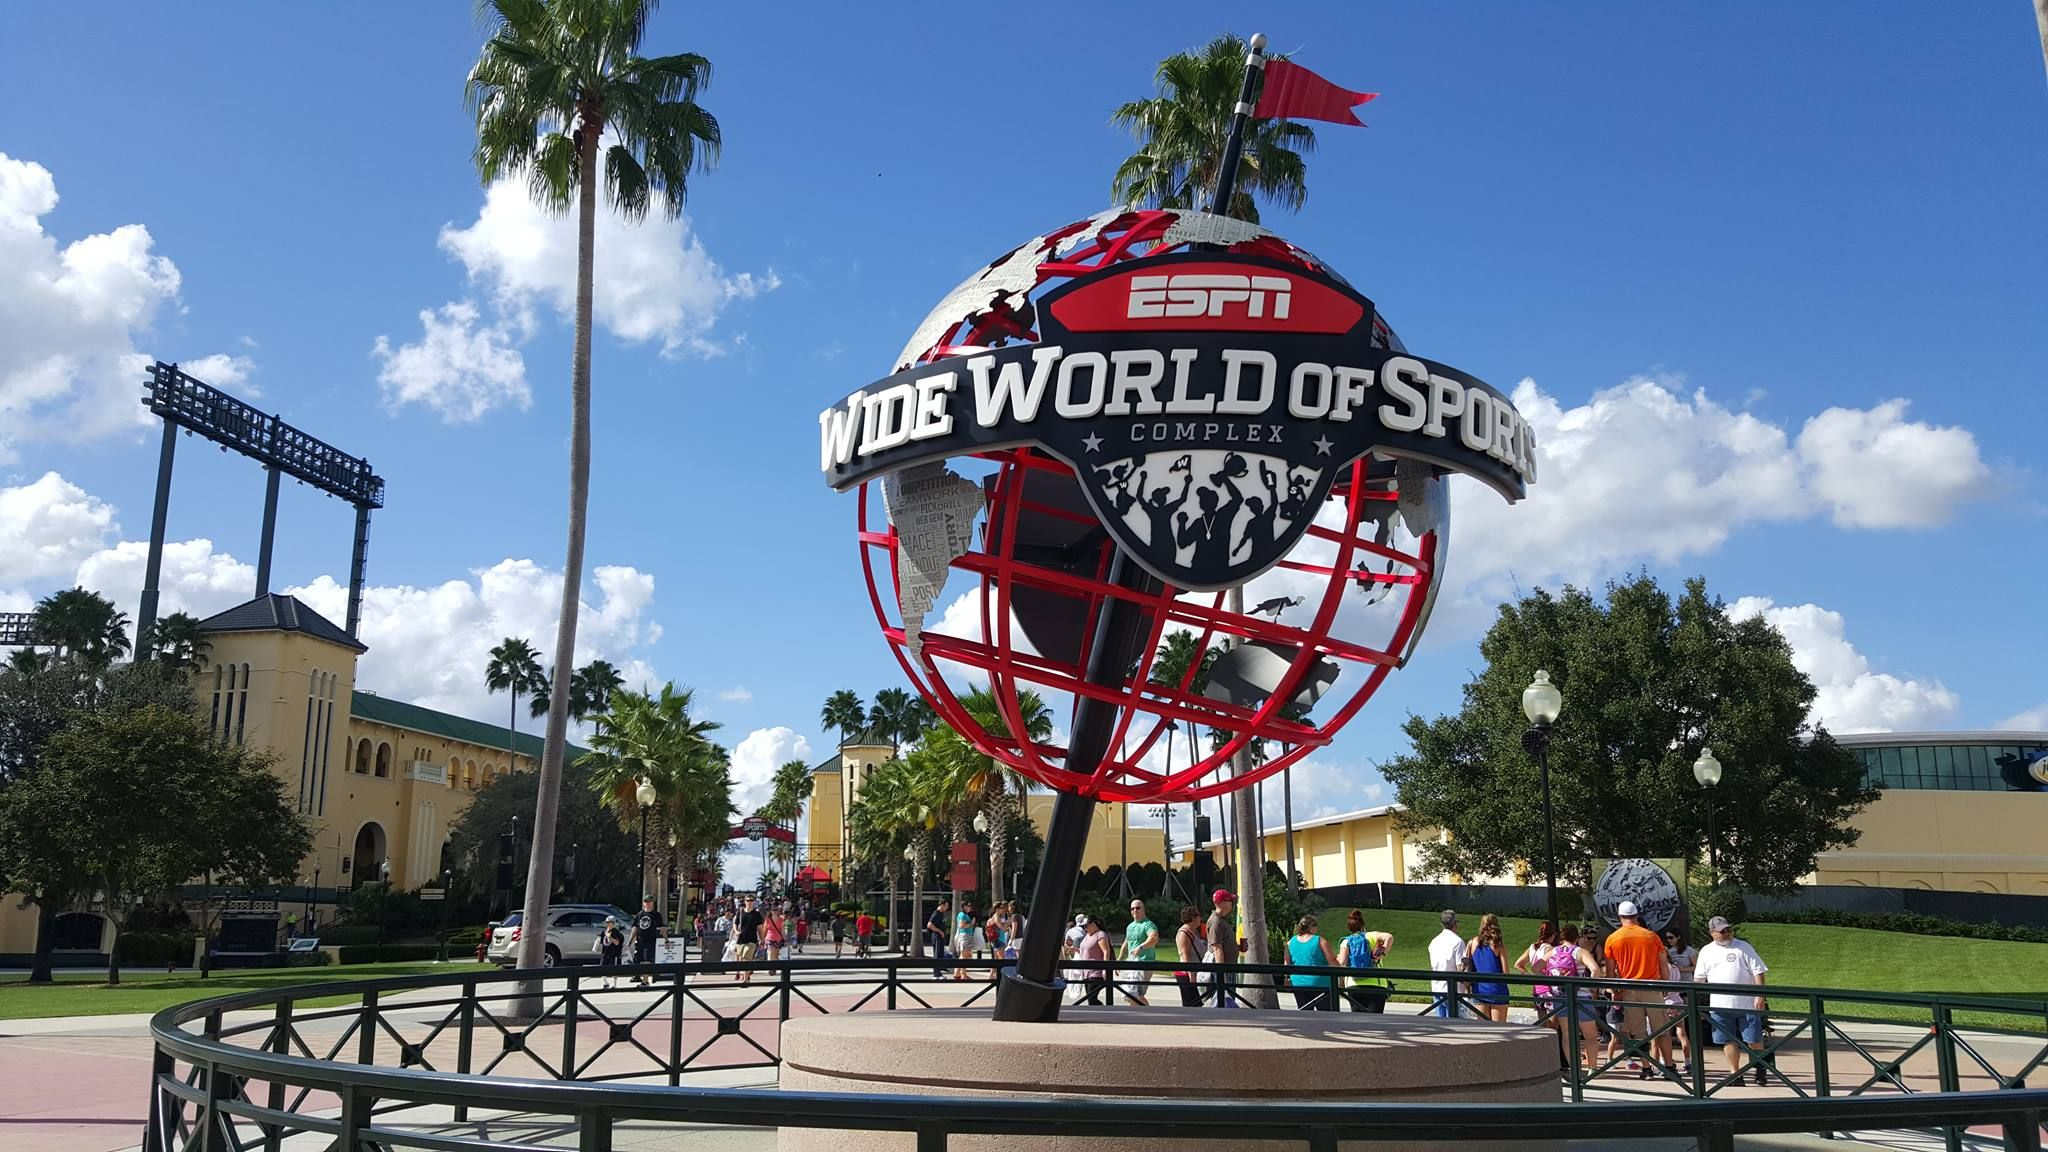 Applications Now Open For 2017 Disney Soccer Showcase World Of Sports Sports Complex Disney World Resorts